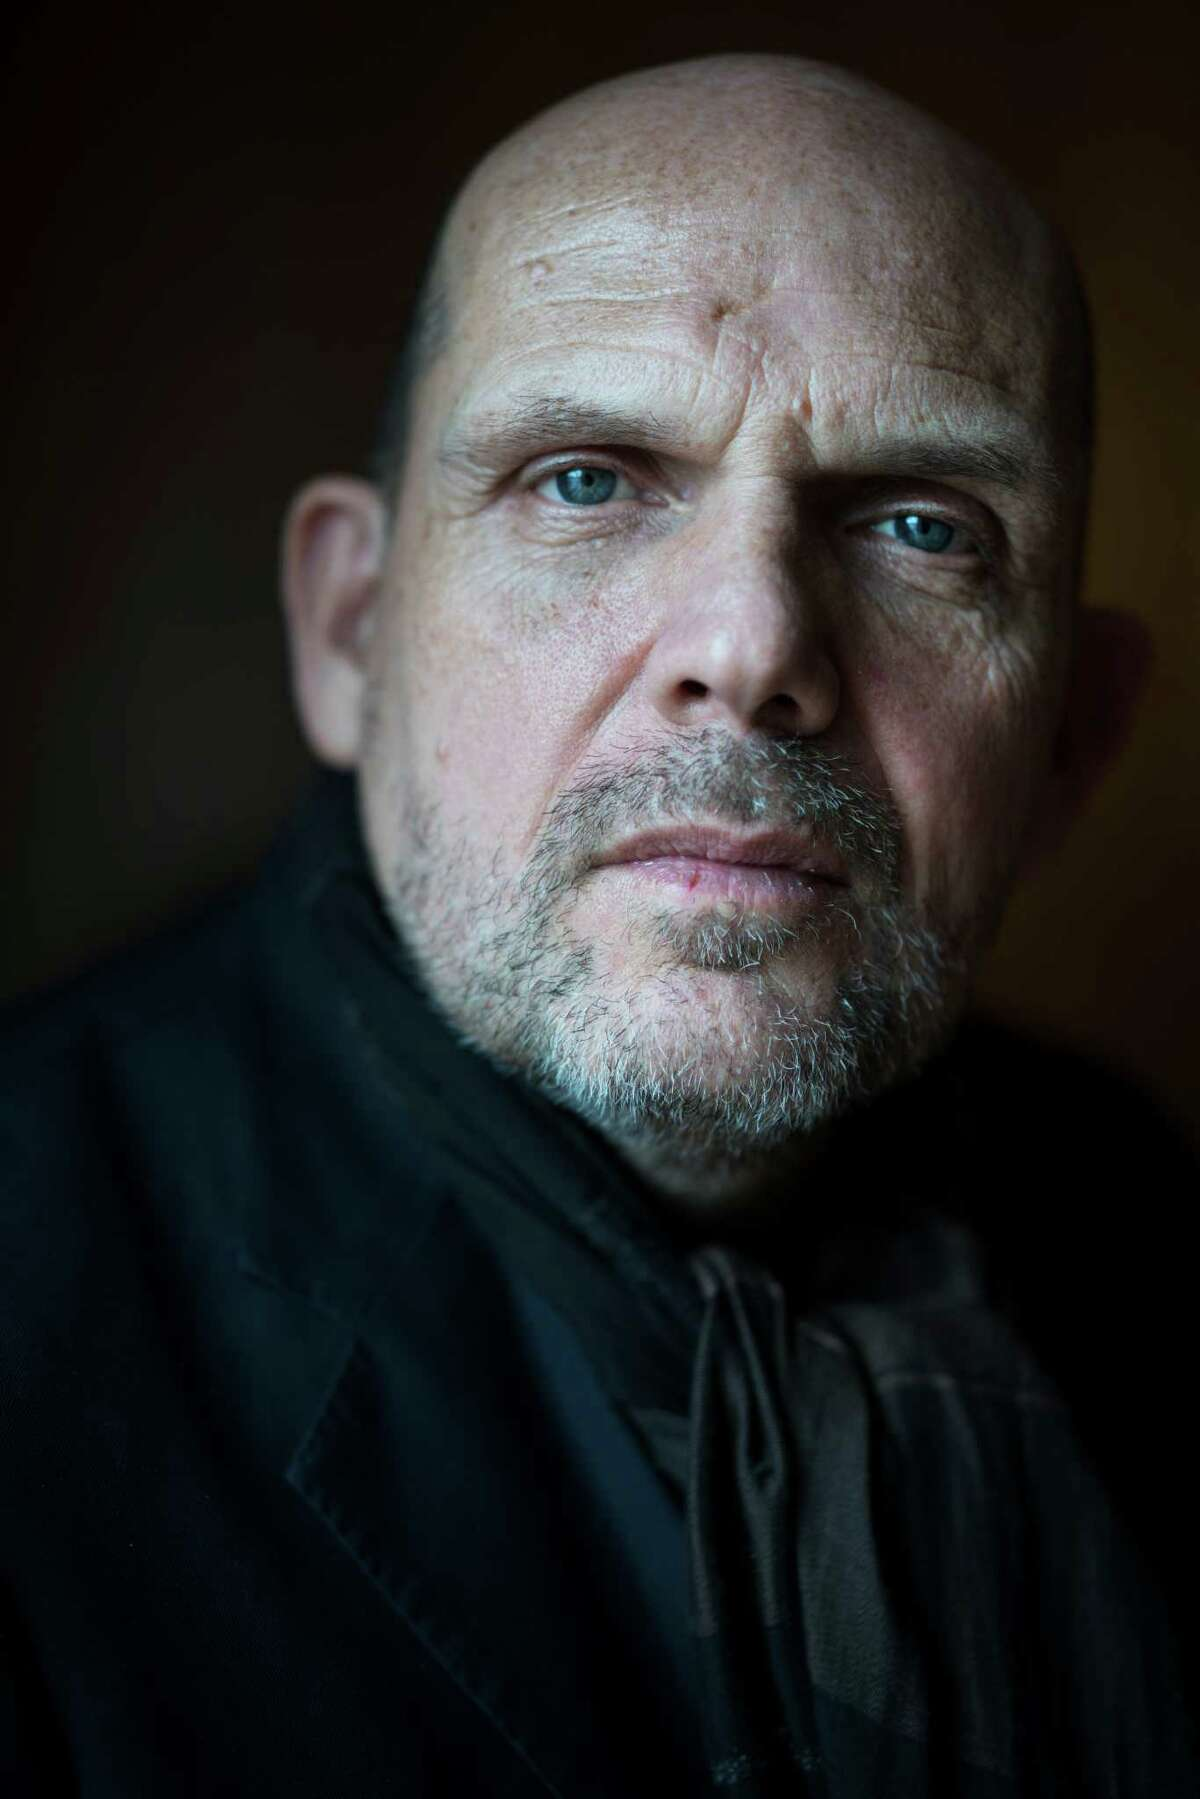 FILE-- Dutch conductor Jaap van Zweden, the music director of the Dallas Symphony Orchestra and the Hong Kong Philharmonic Orchestra, in New York, Jan. 26, 2016. Van Zweden will continue with the Hong Kong Philharmonic Orchestra even as he becomes music director of the New York Philharmonic in 2018. (Todd Heisler/The New York Times)